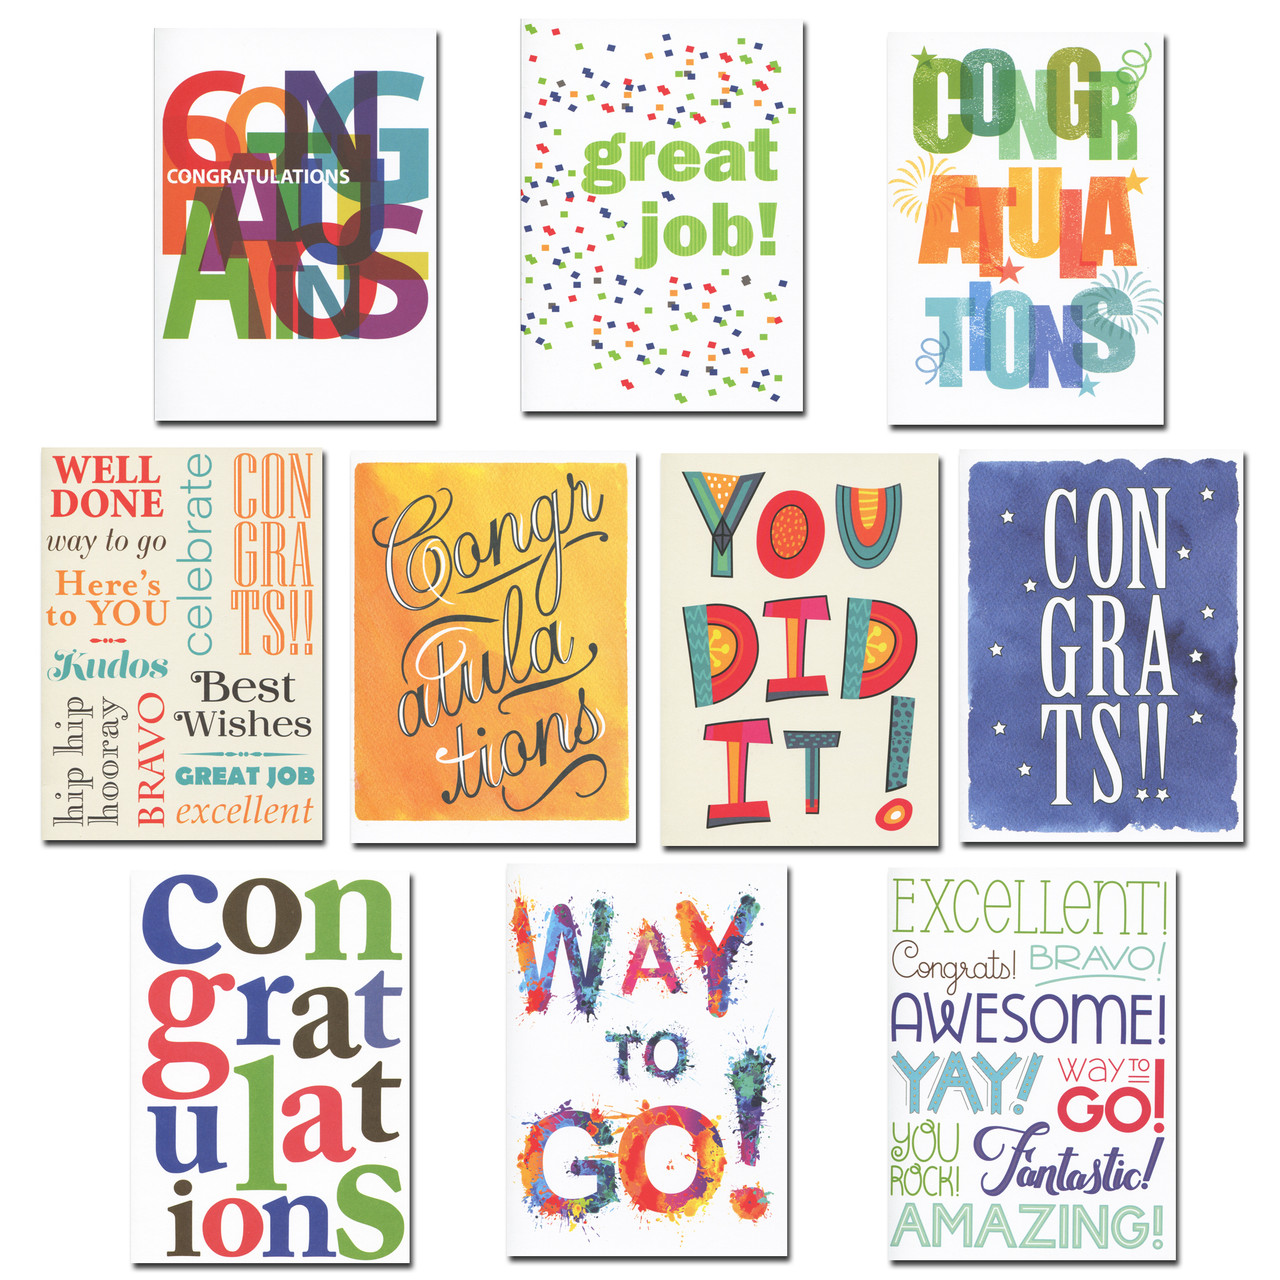 Celebration Congratulations Card Assortment features bright colors and celebratory wording